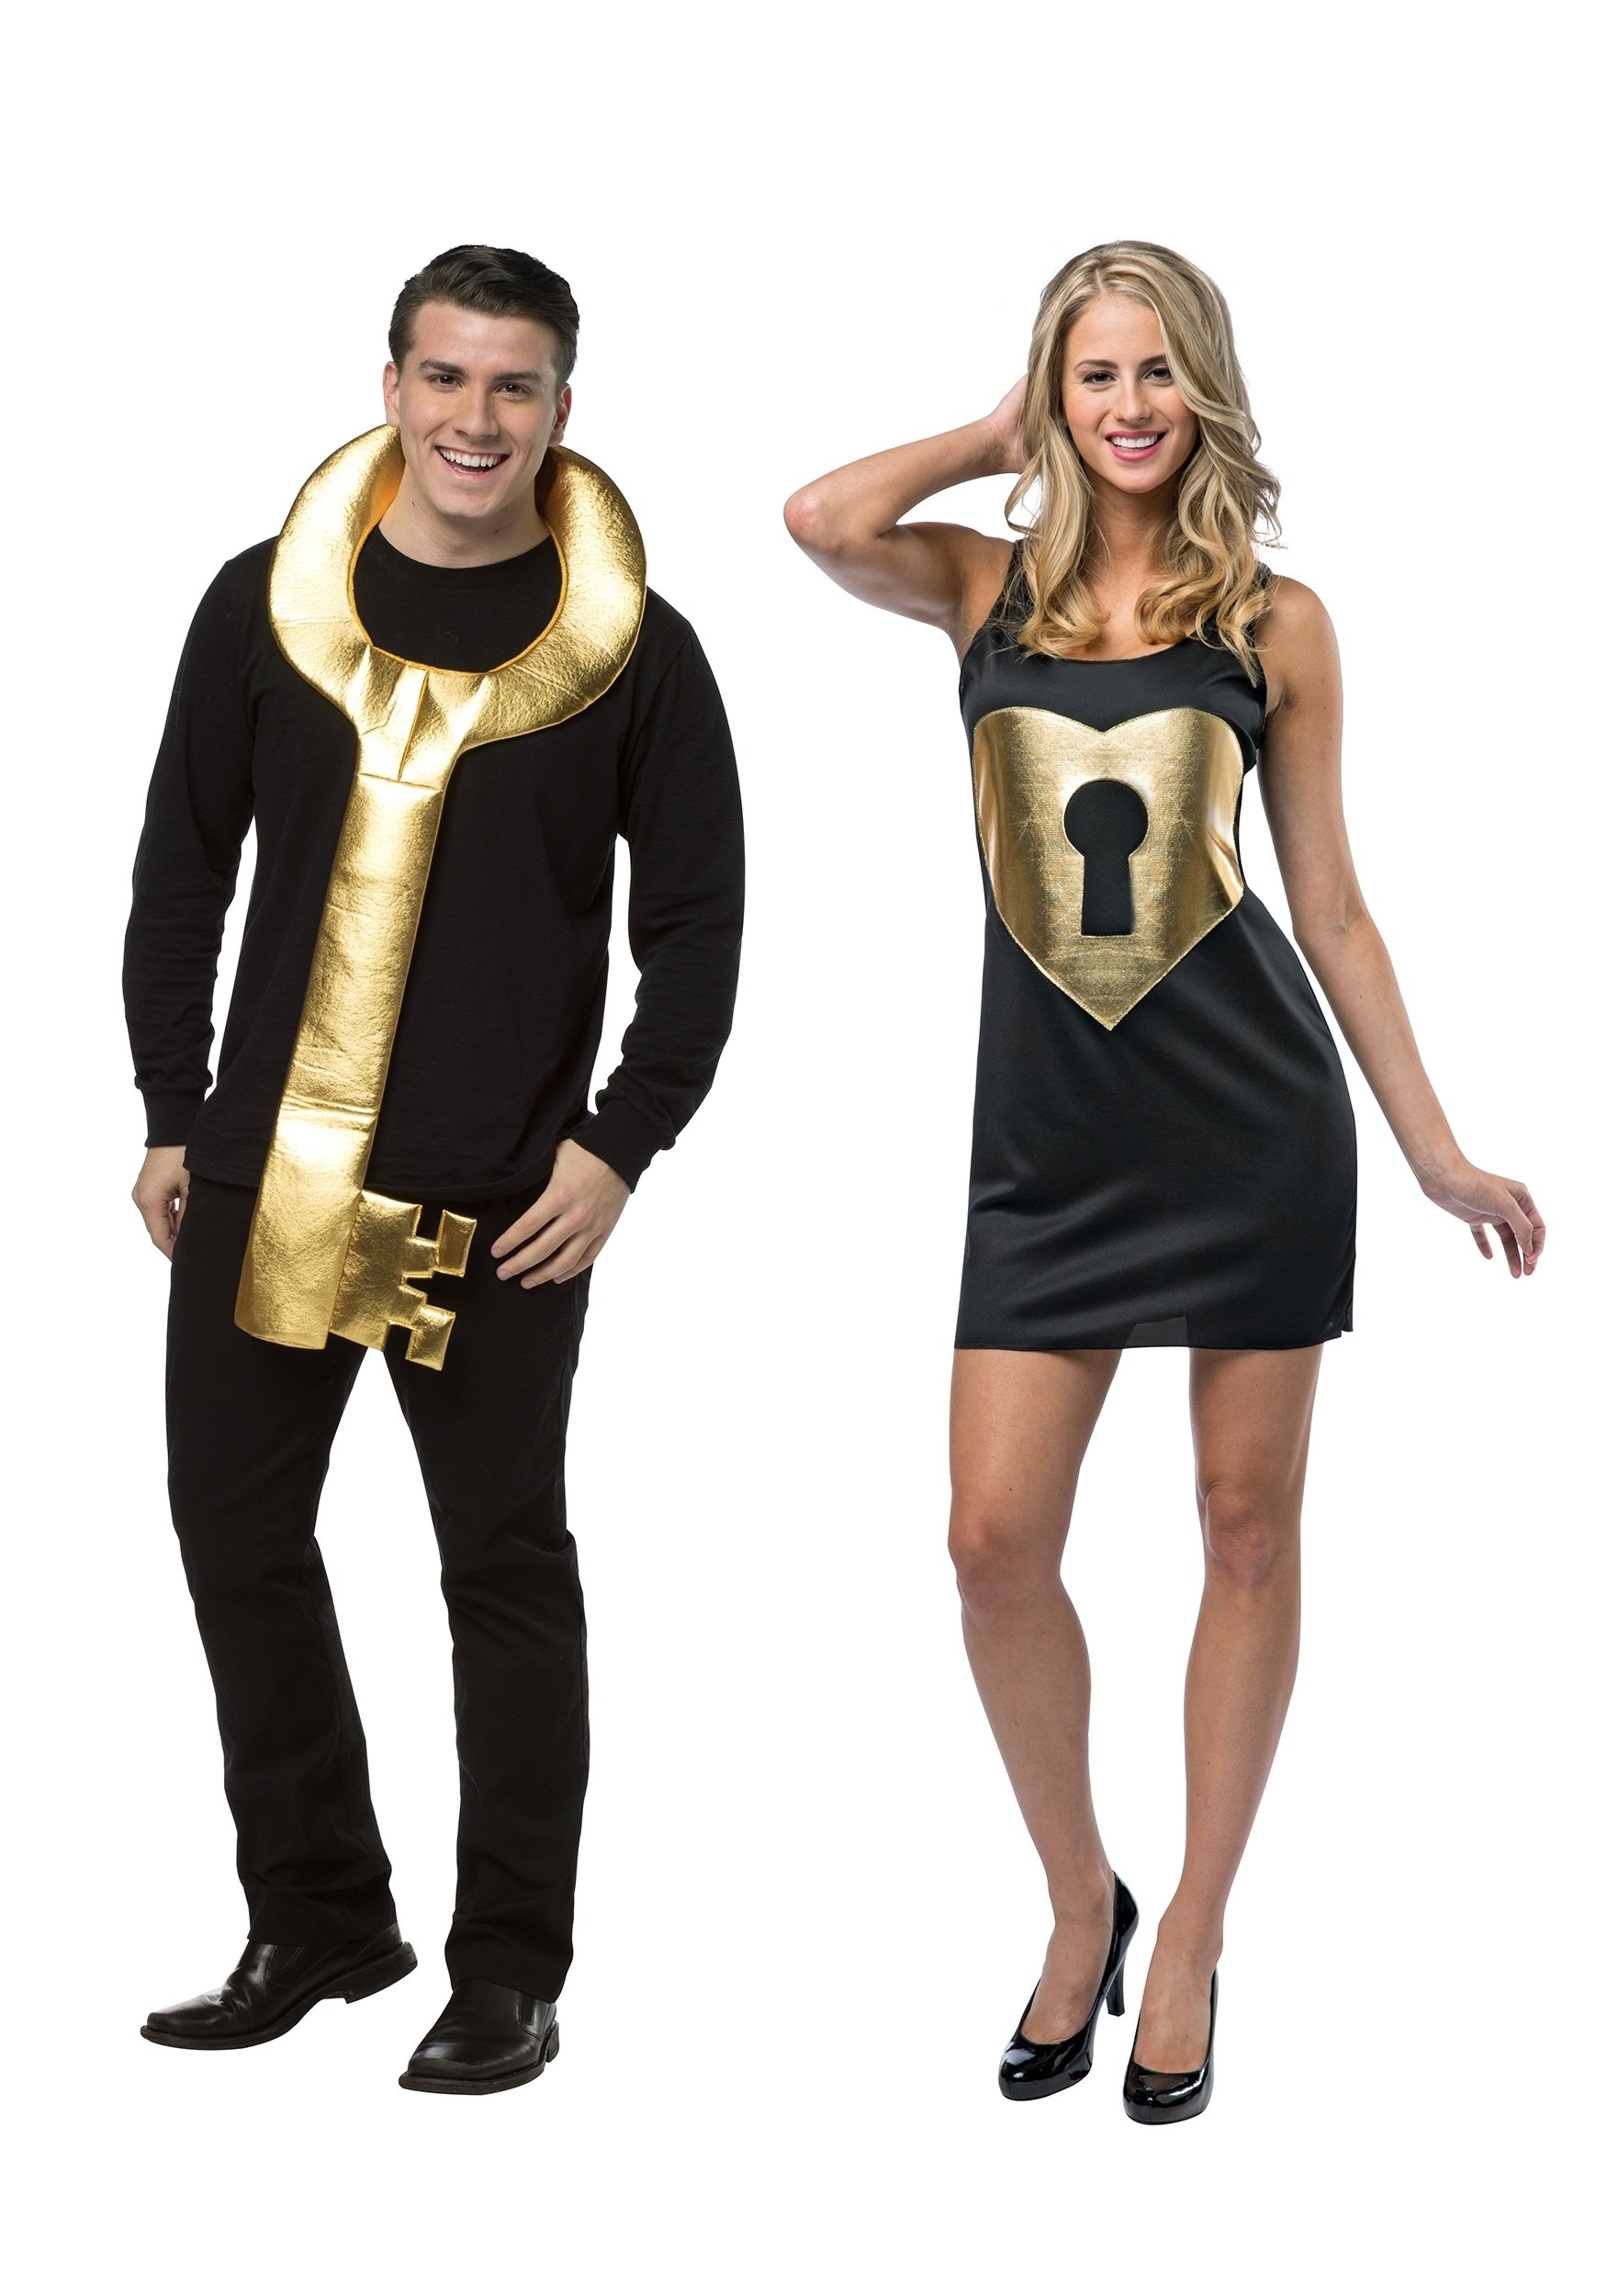 10 Stylish Cute Couple Halloween Costumes Ideas lock and key couples costume 1 2020